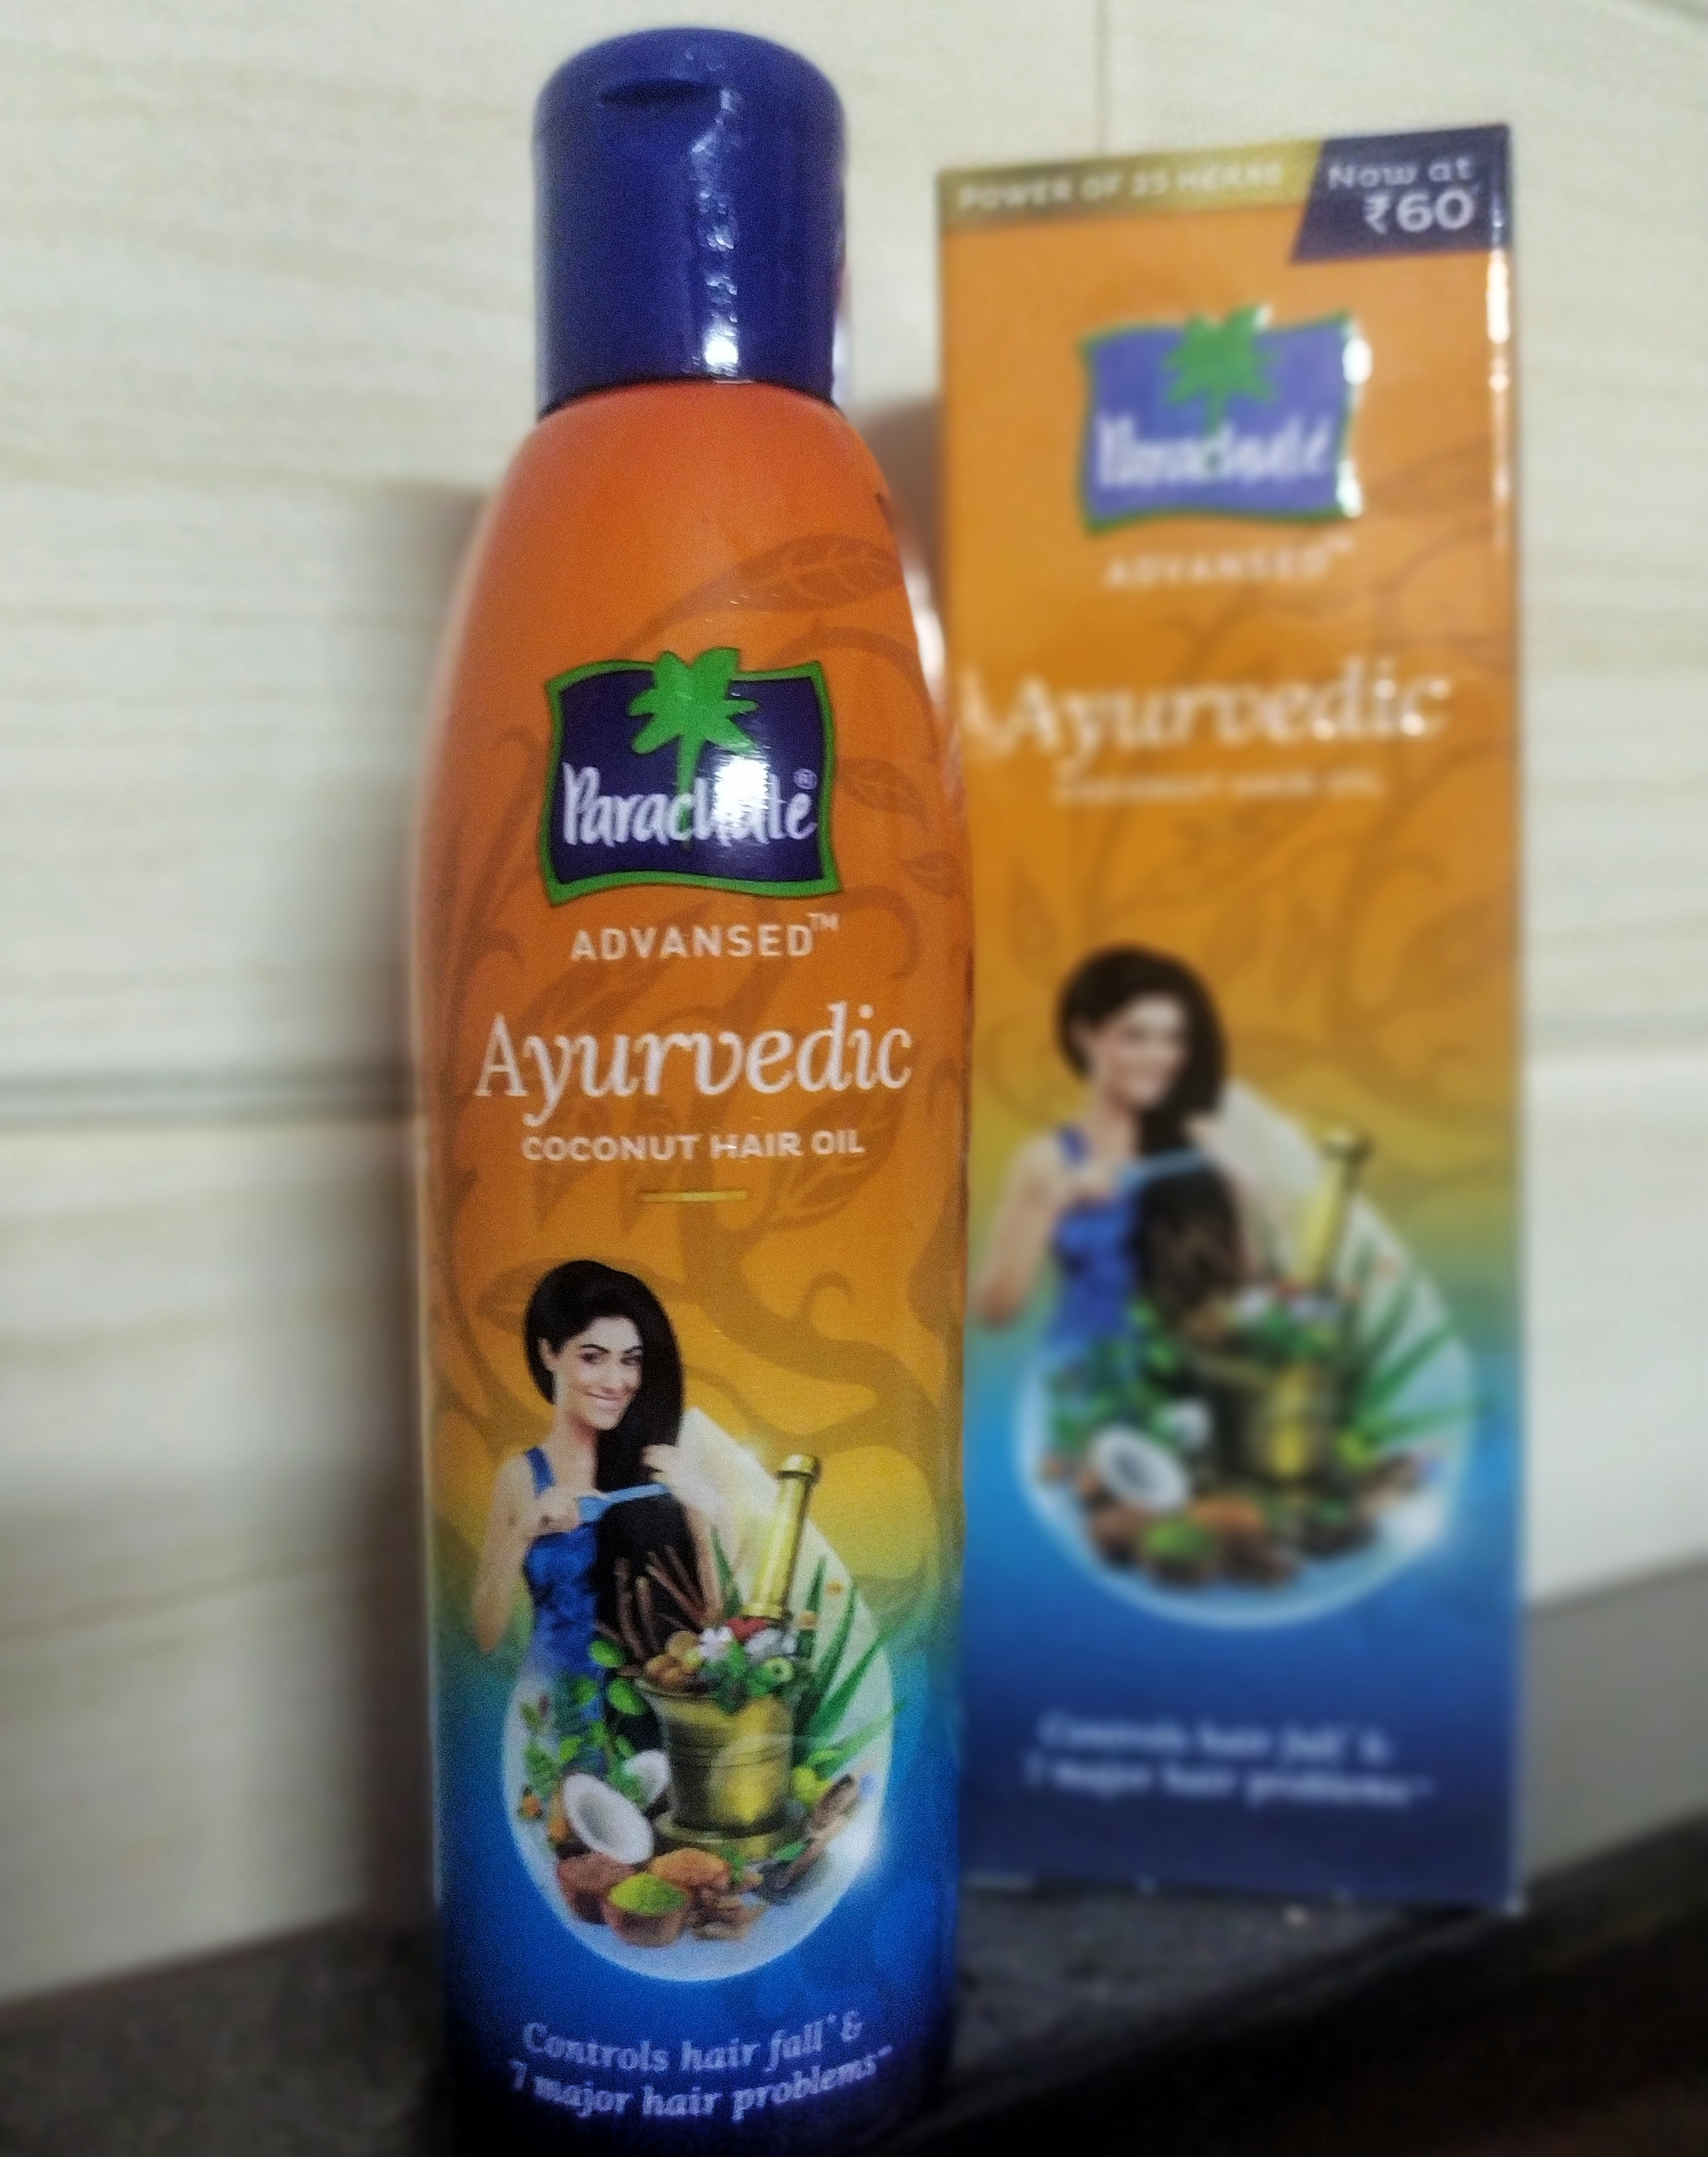 Parachute Advansed Ayurvedic Coconut Hair Oil -Very relaxing massage-By dimple_kaushik